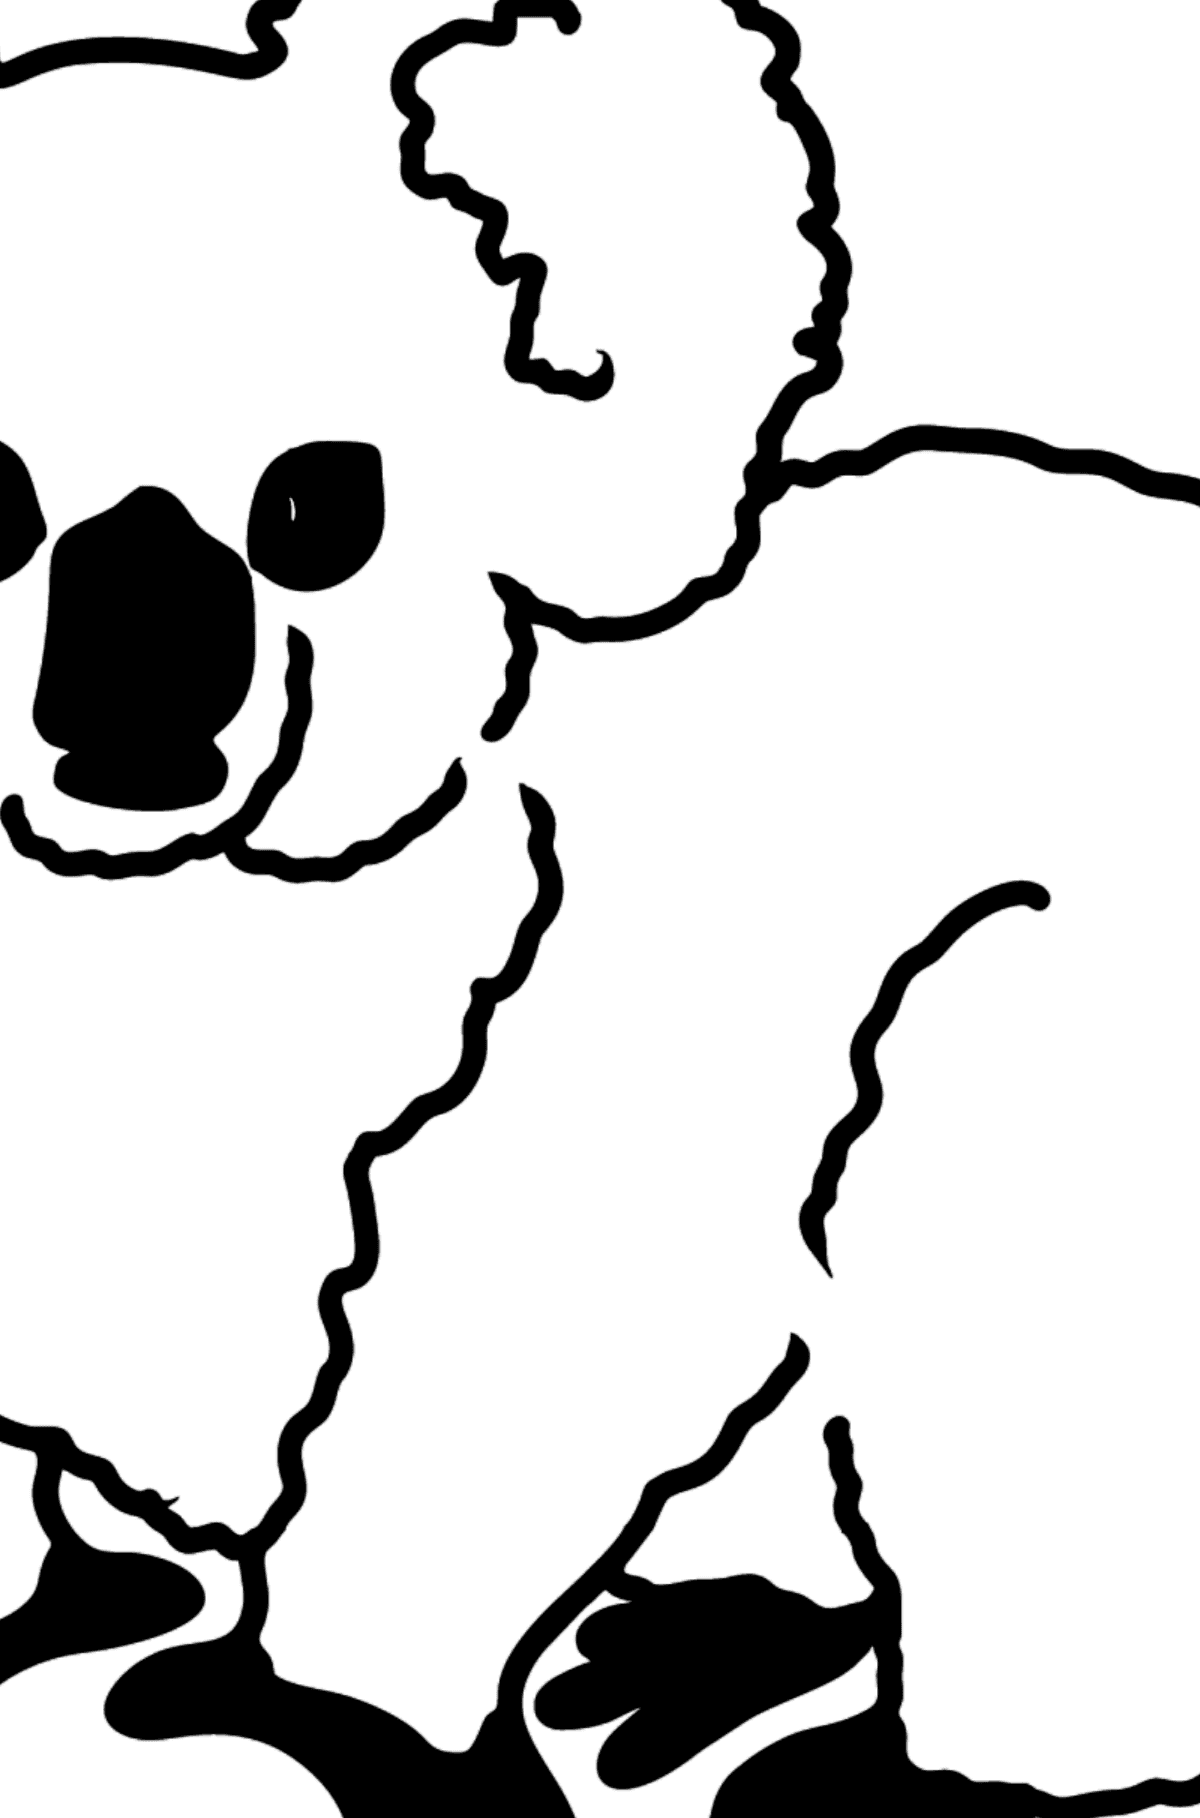 Koala coloring page - Coloring by Symbols for Kids